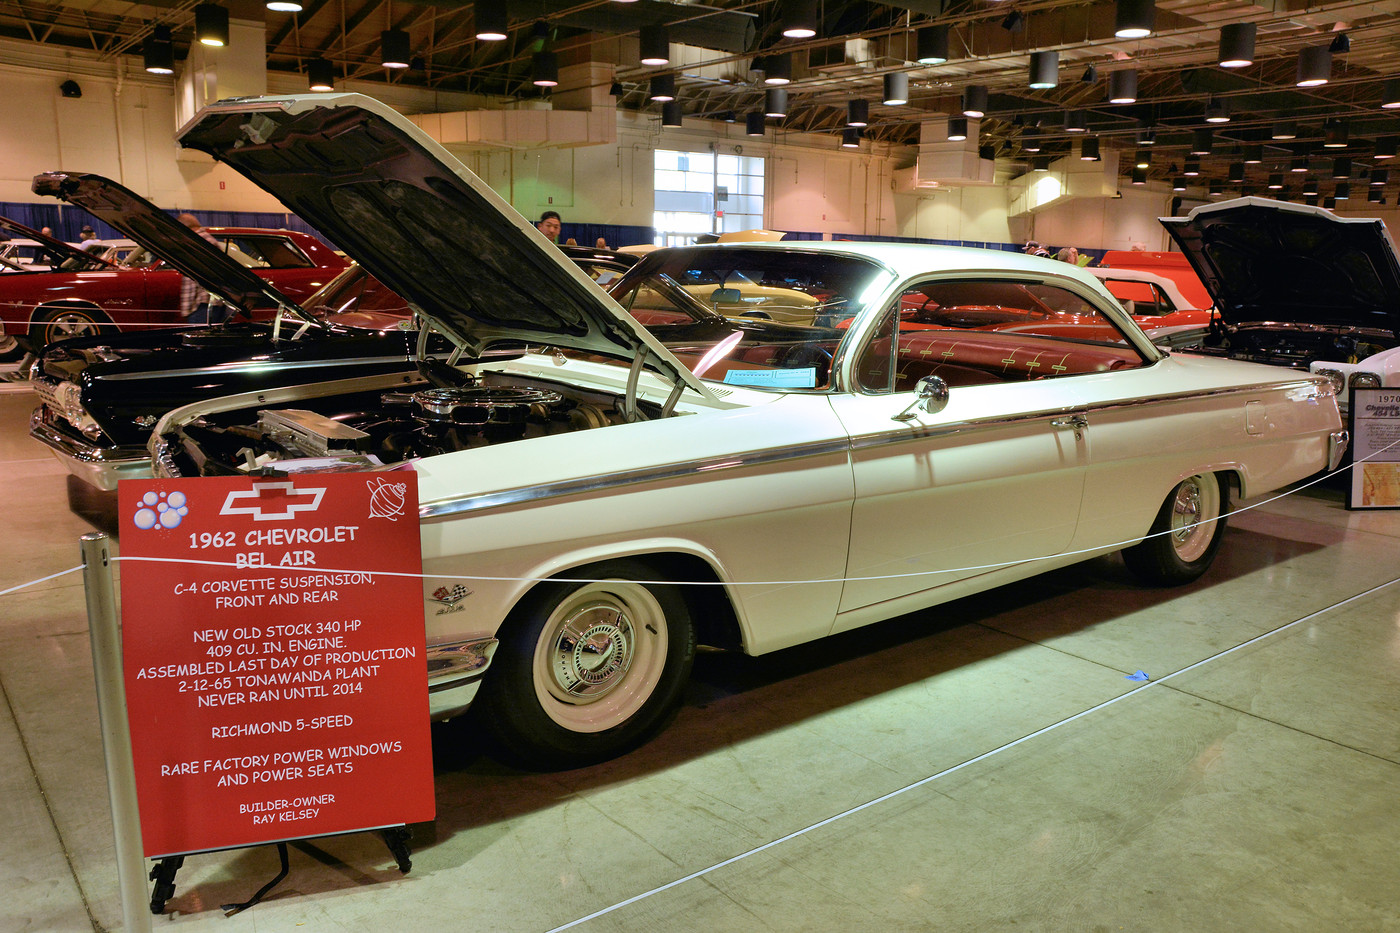 1962 Chevrolet Bel Air owned by Ray Kelsey DSC 4799 FS